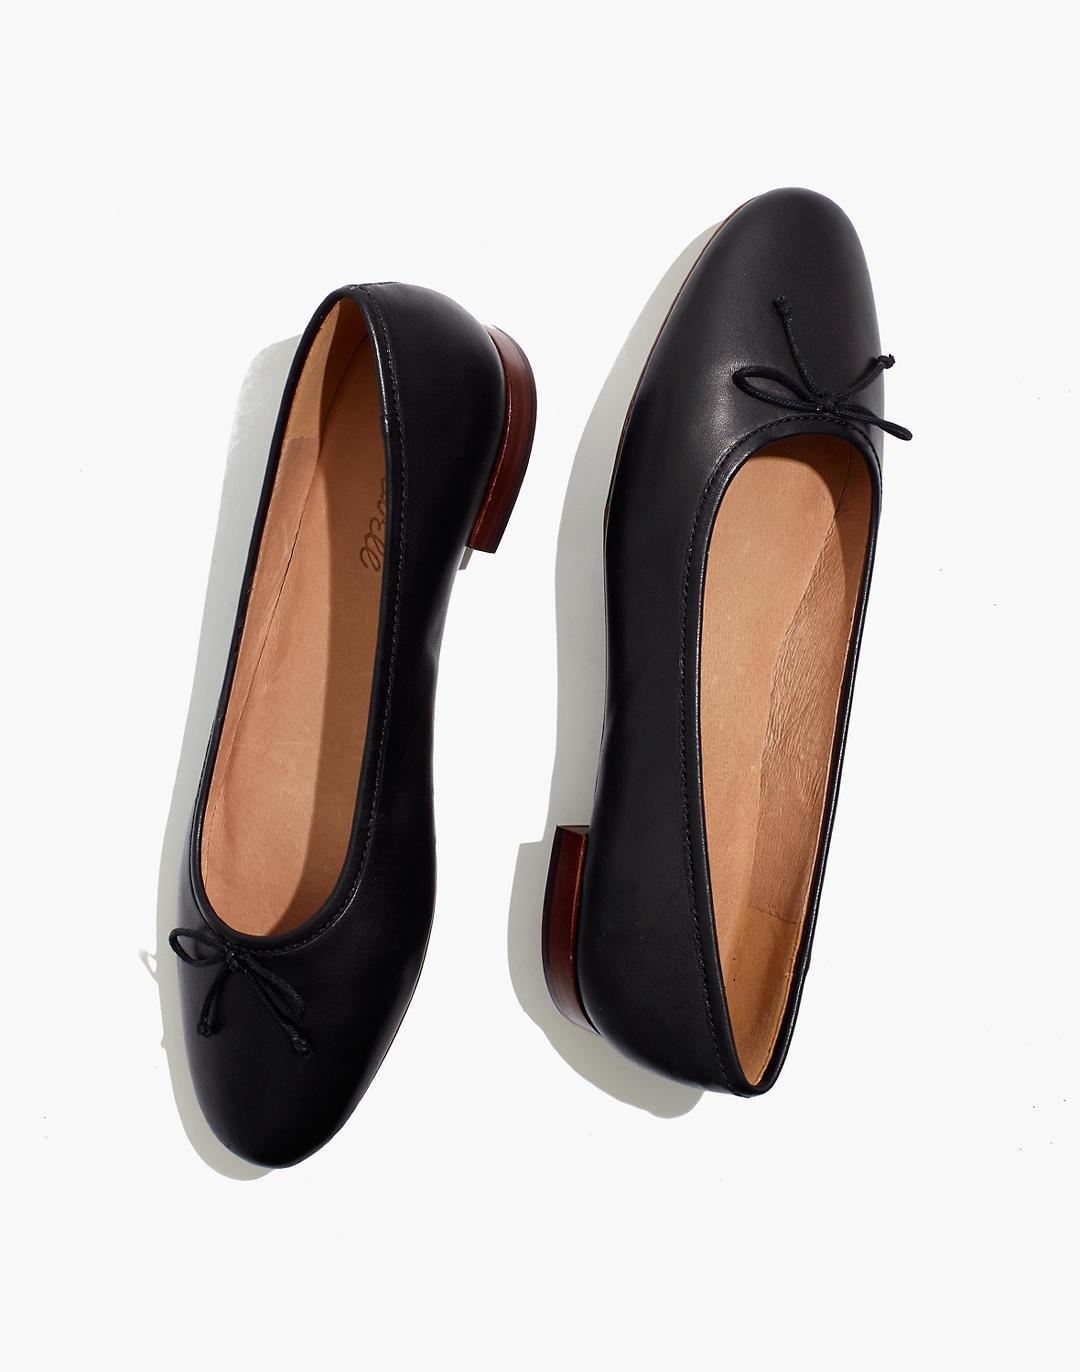 The Adelle Ballet Flat in Leather